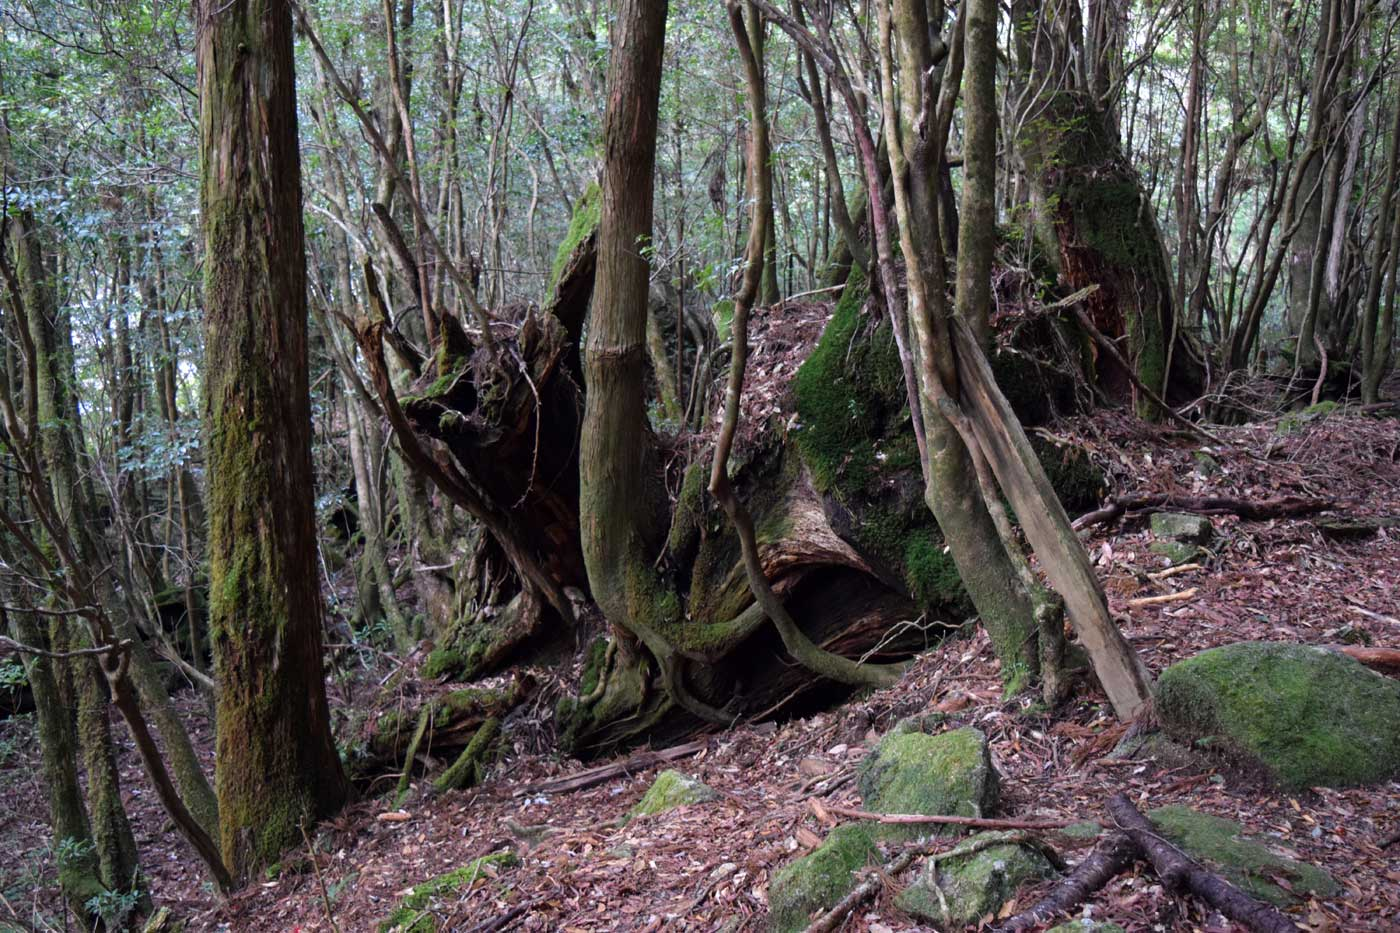 Generation renewal on <i>Cryptomeria</i> stumps in the forest.